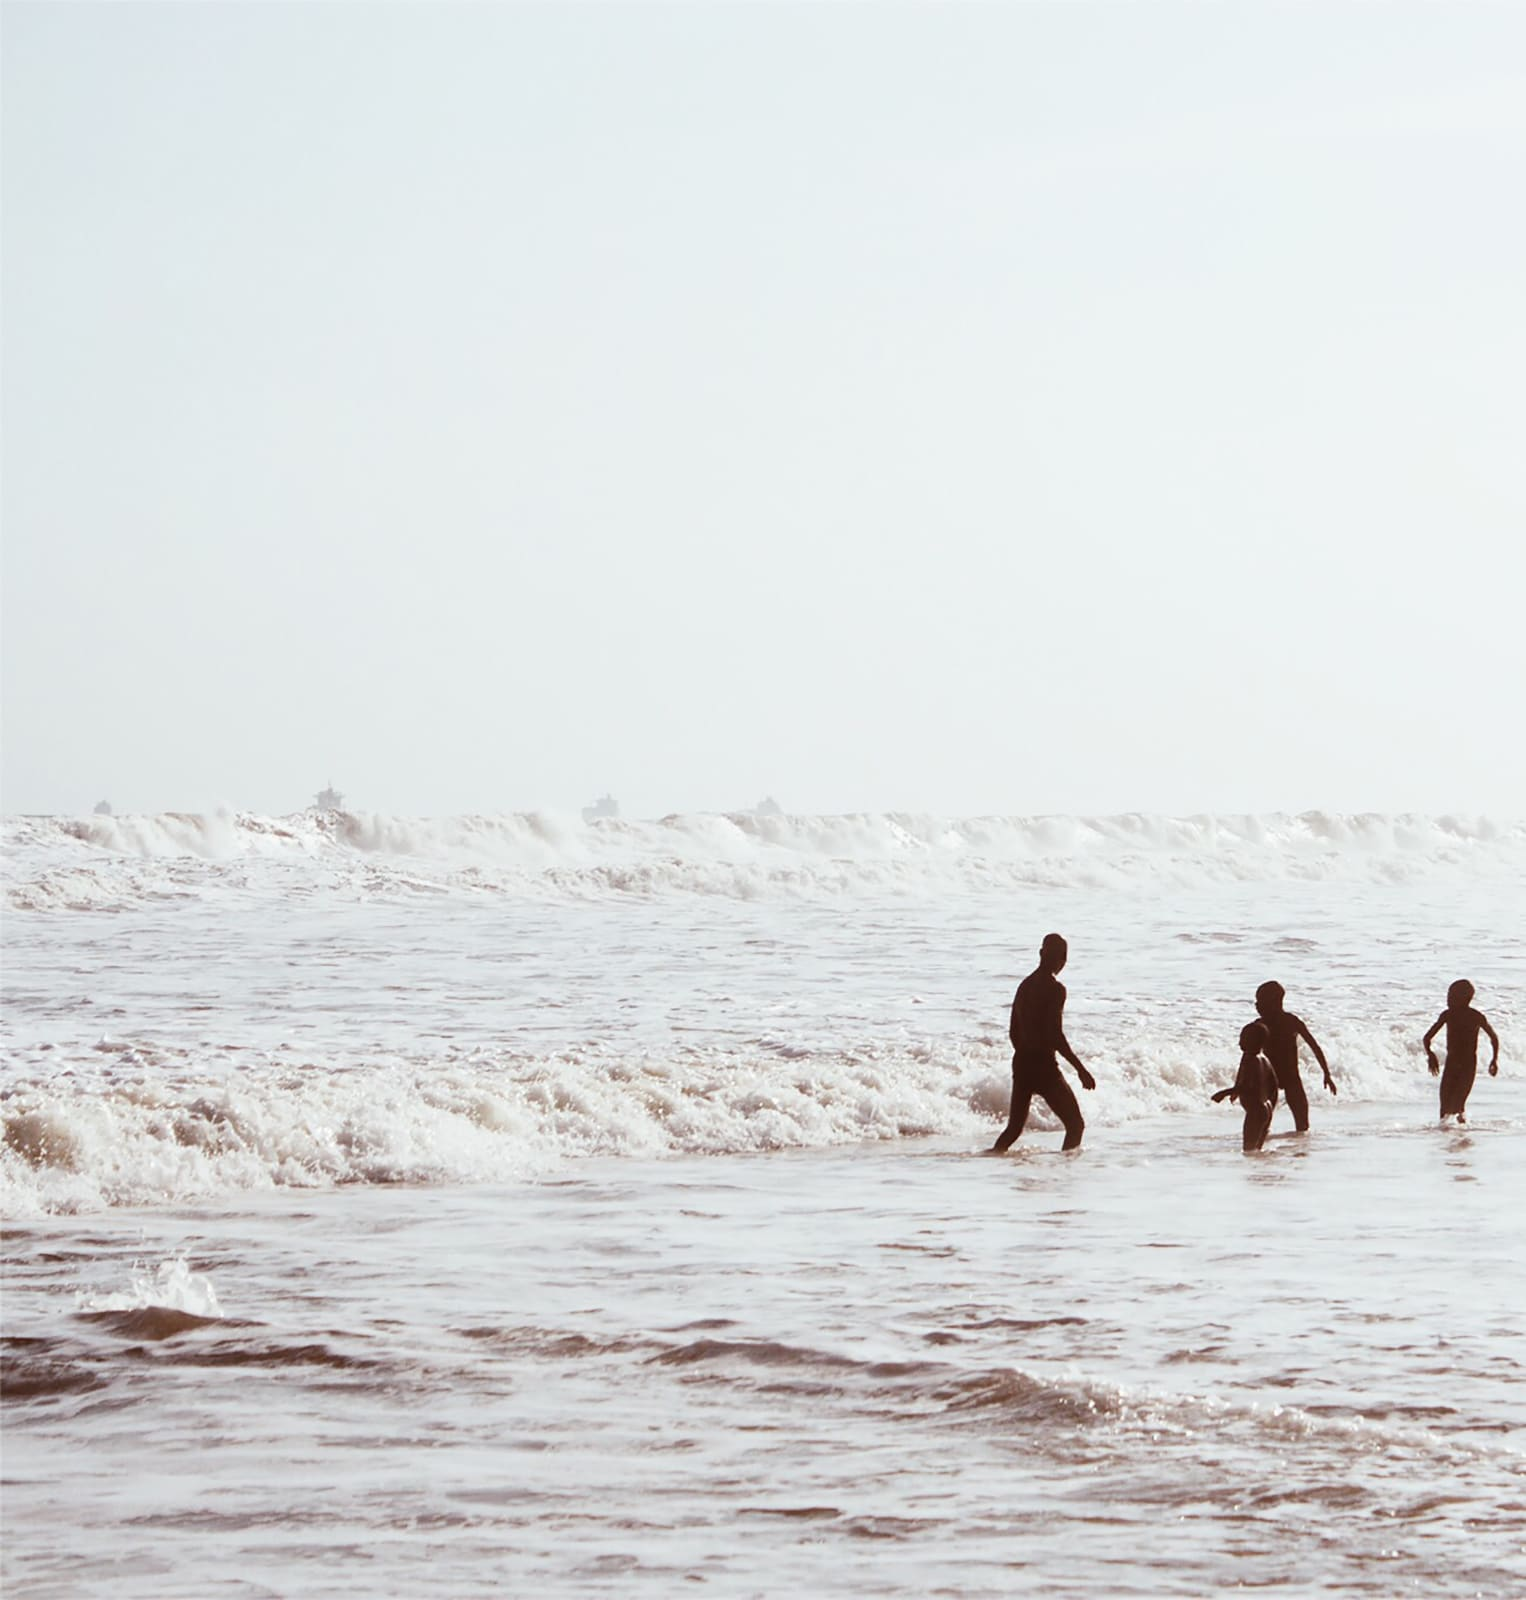 Arinzechukwu Patrick A man plays and his kids play with the waves 28 x 28 cm 21 x 21 cm Digital print